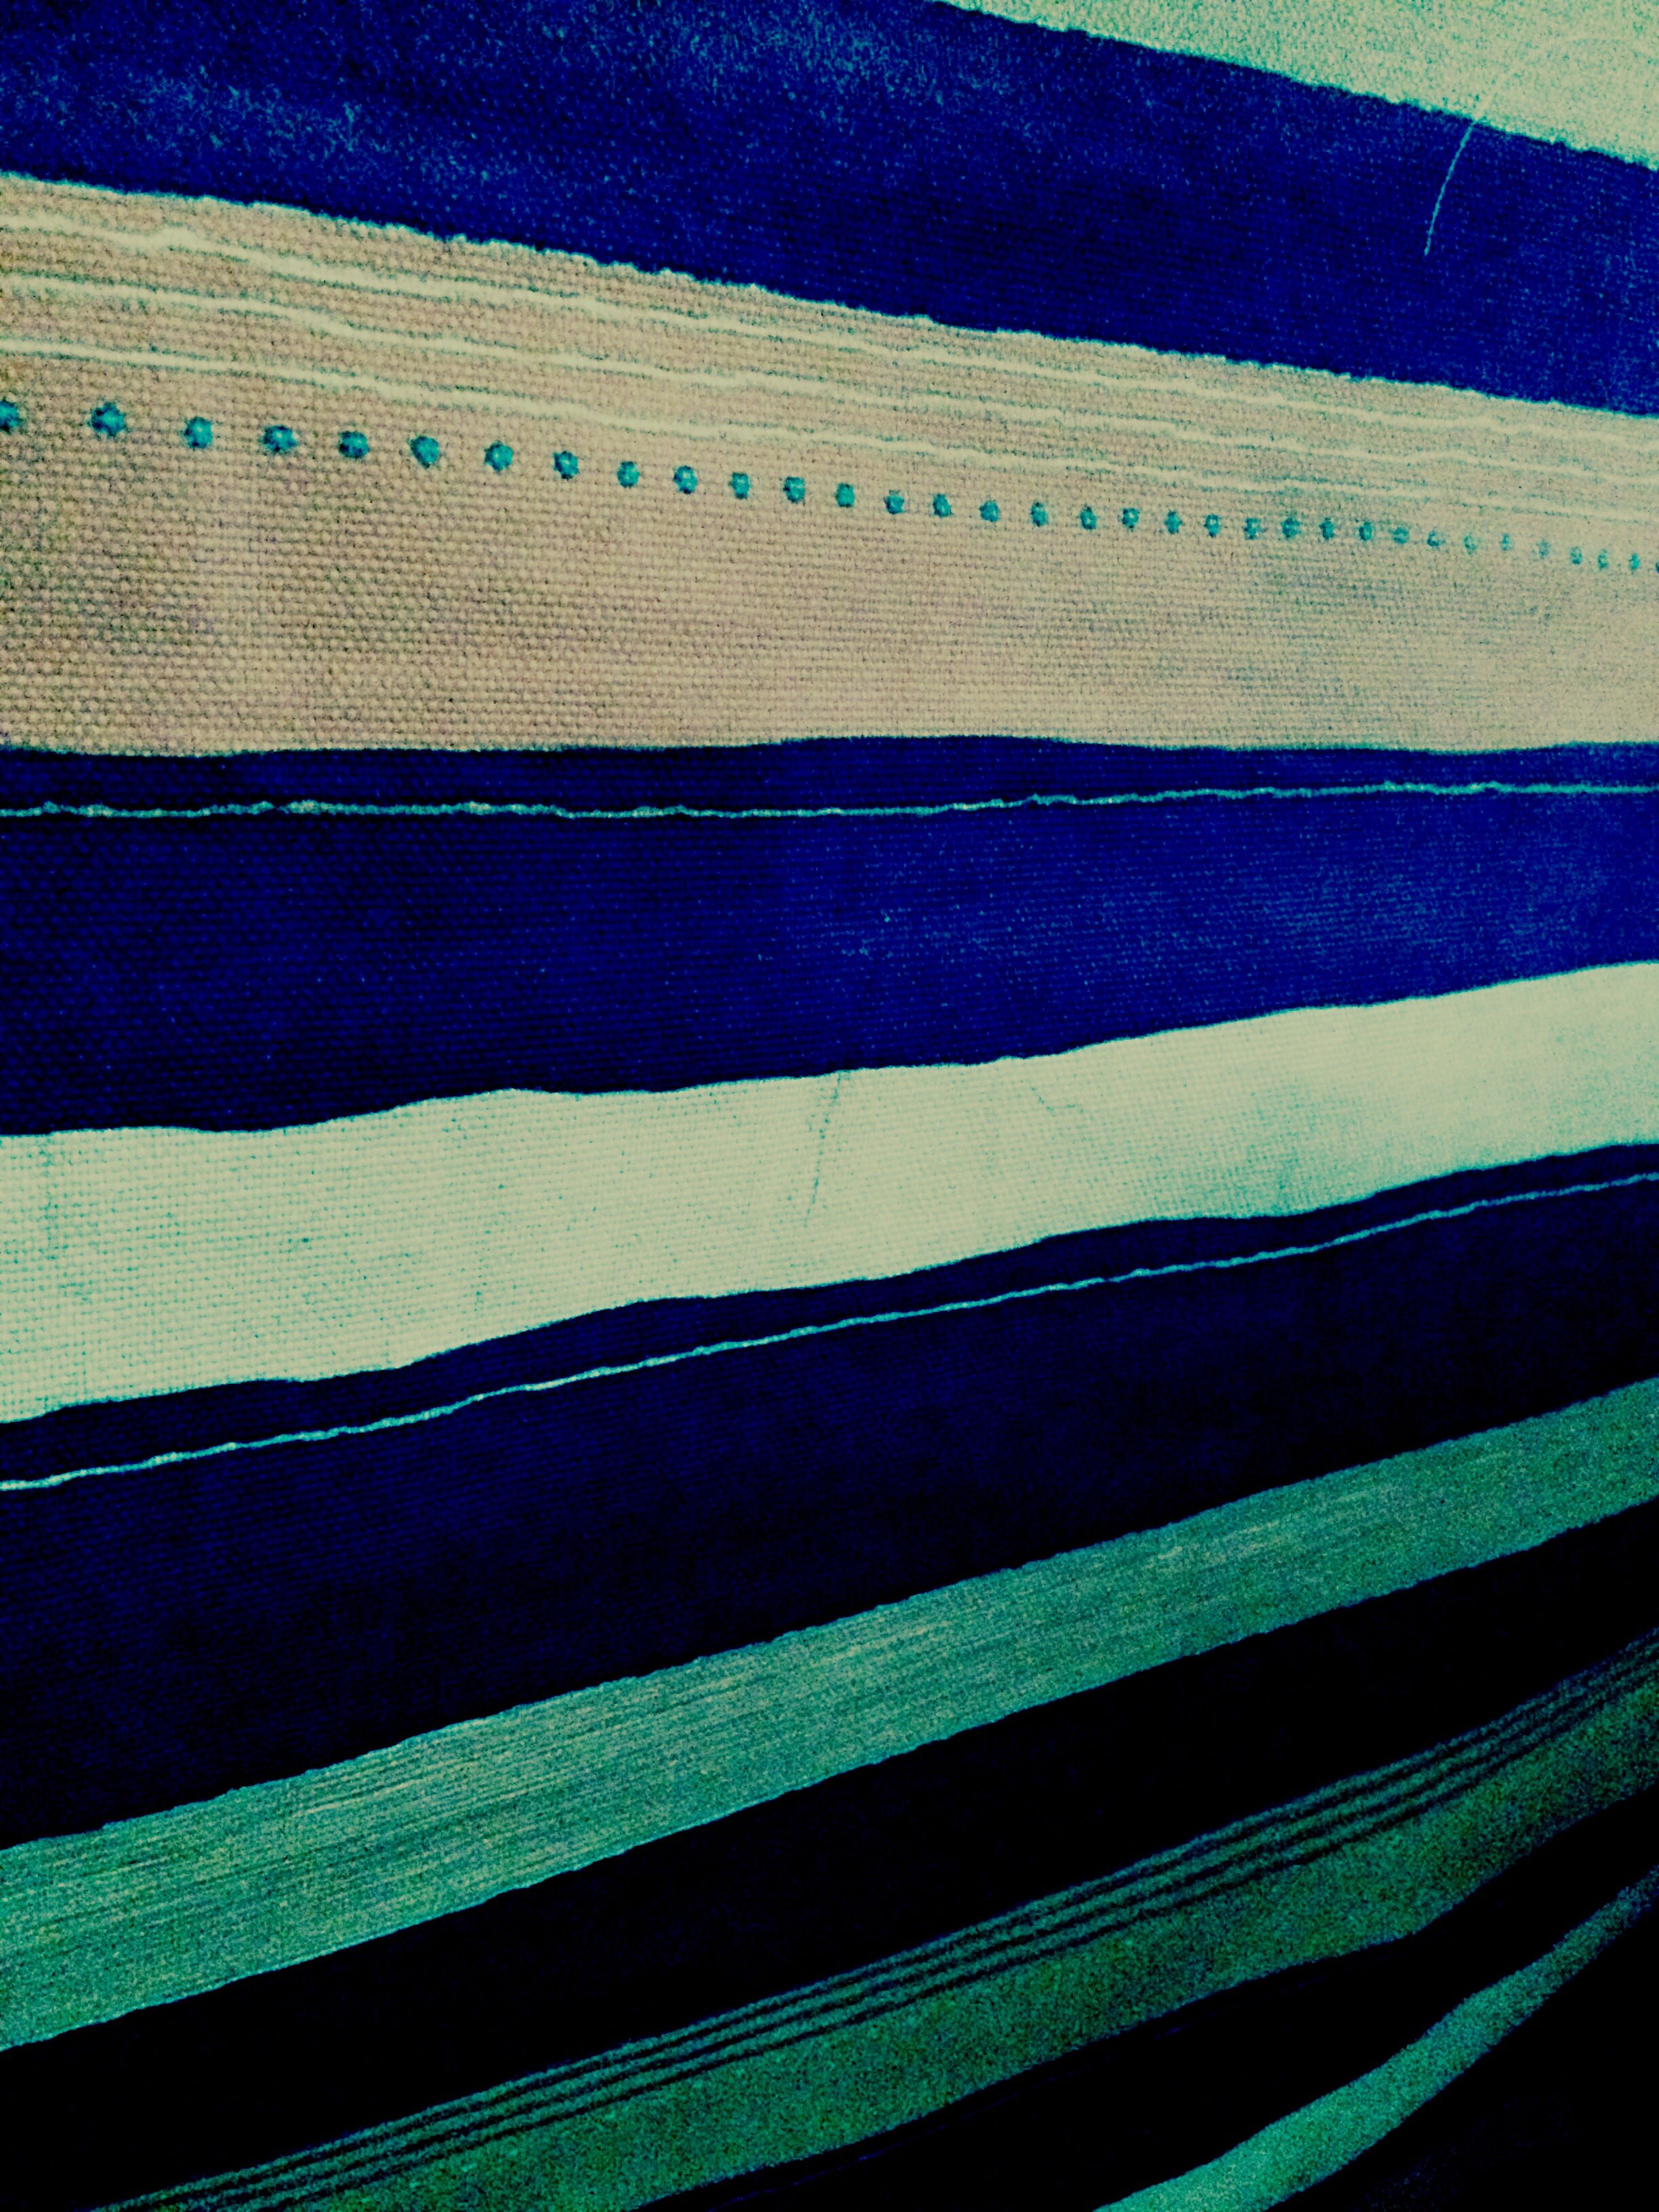 pattern, full frame, backgrounds, fabric, textile, multi colored, close-up, textured, striped, design, green color, colorful, blue, no people, high angle view, indoors, detail, paper, material, repetition